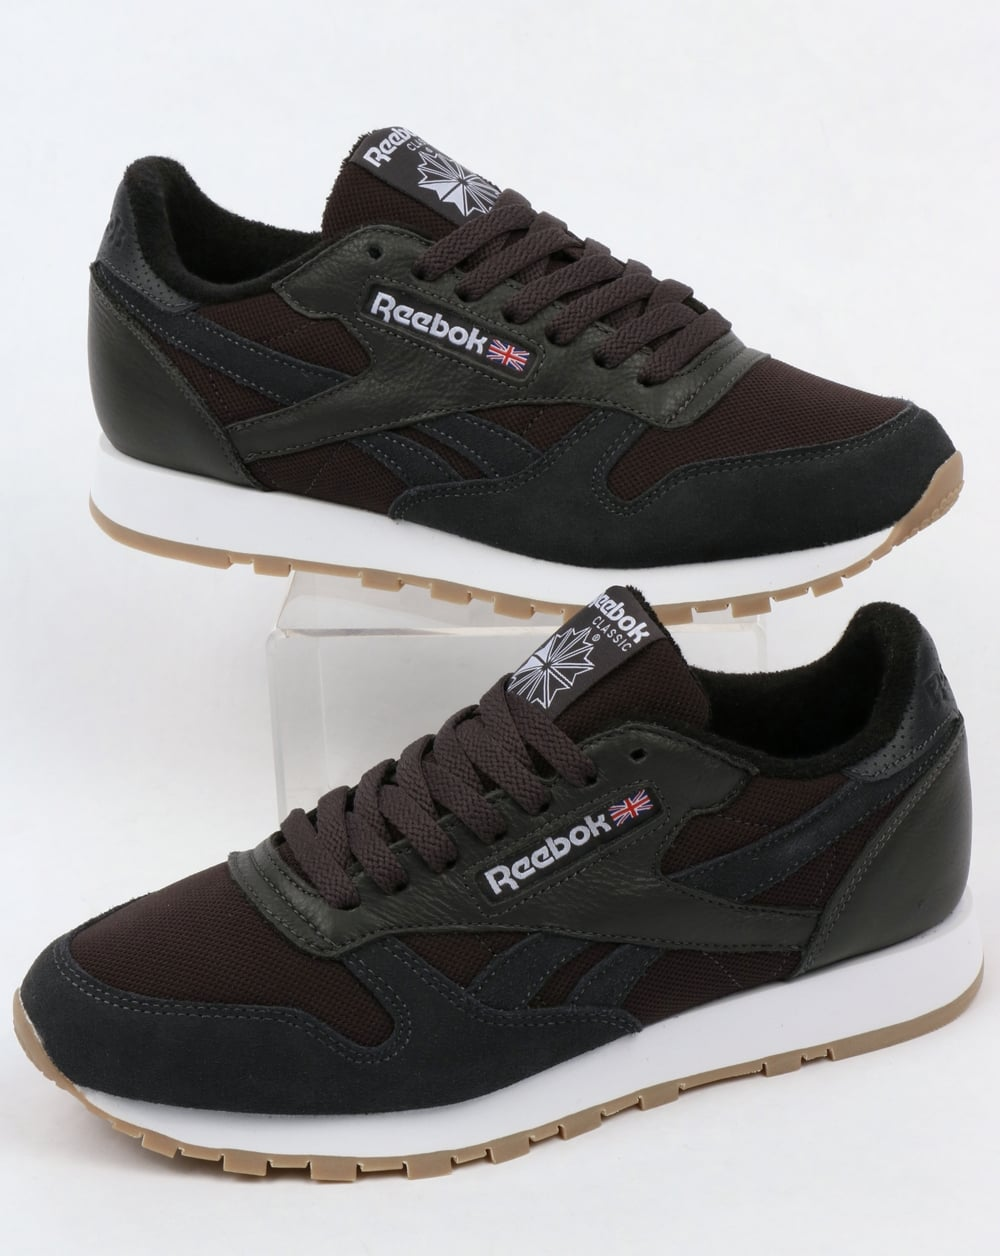 8a49a45baf3d54 Reebok Reebok Classic Leather ESTL Trainers Coal White